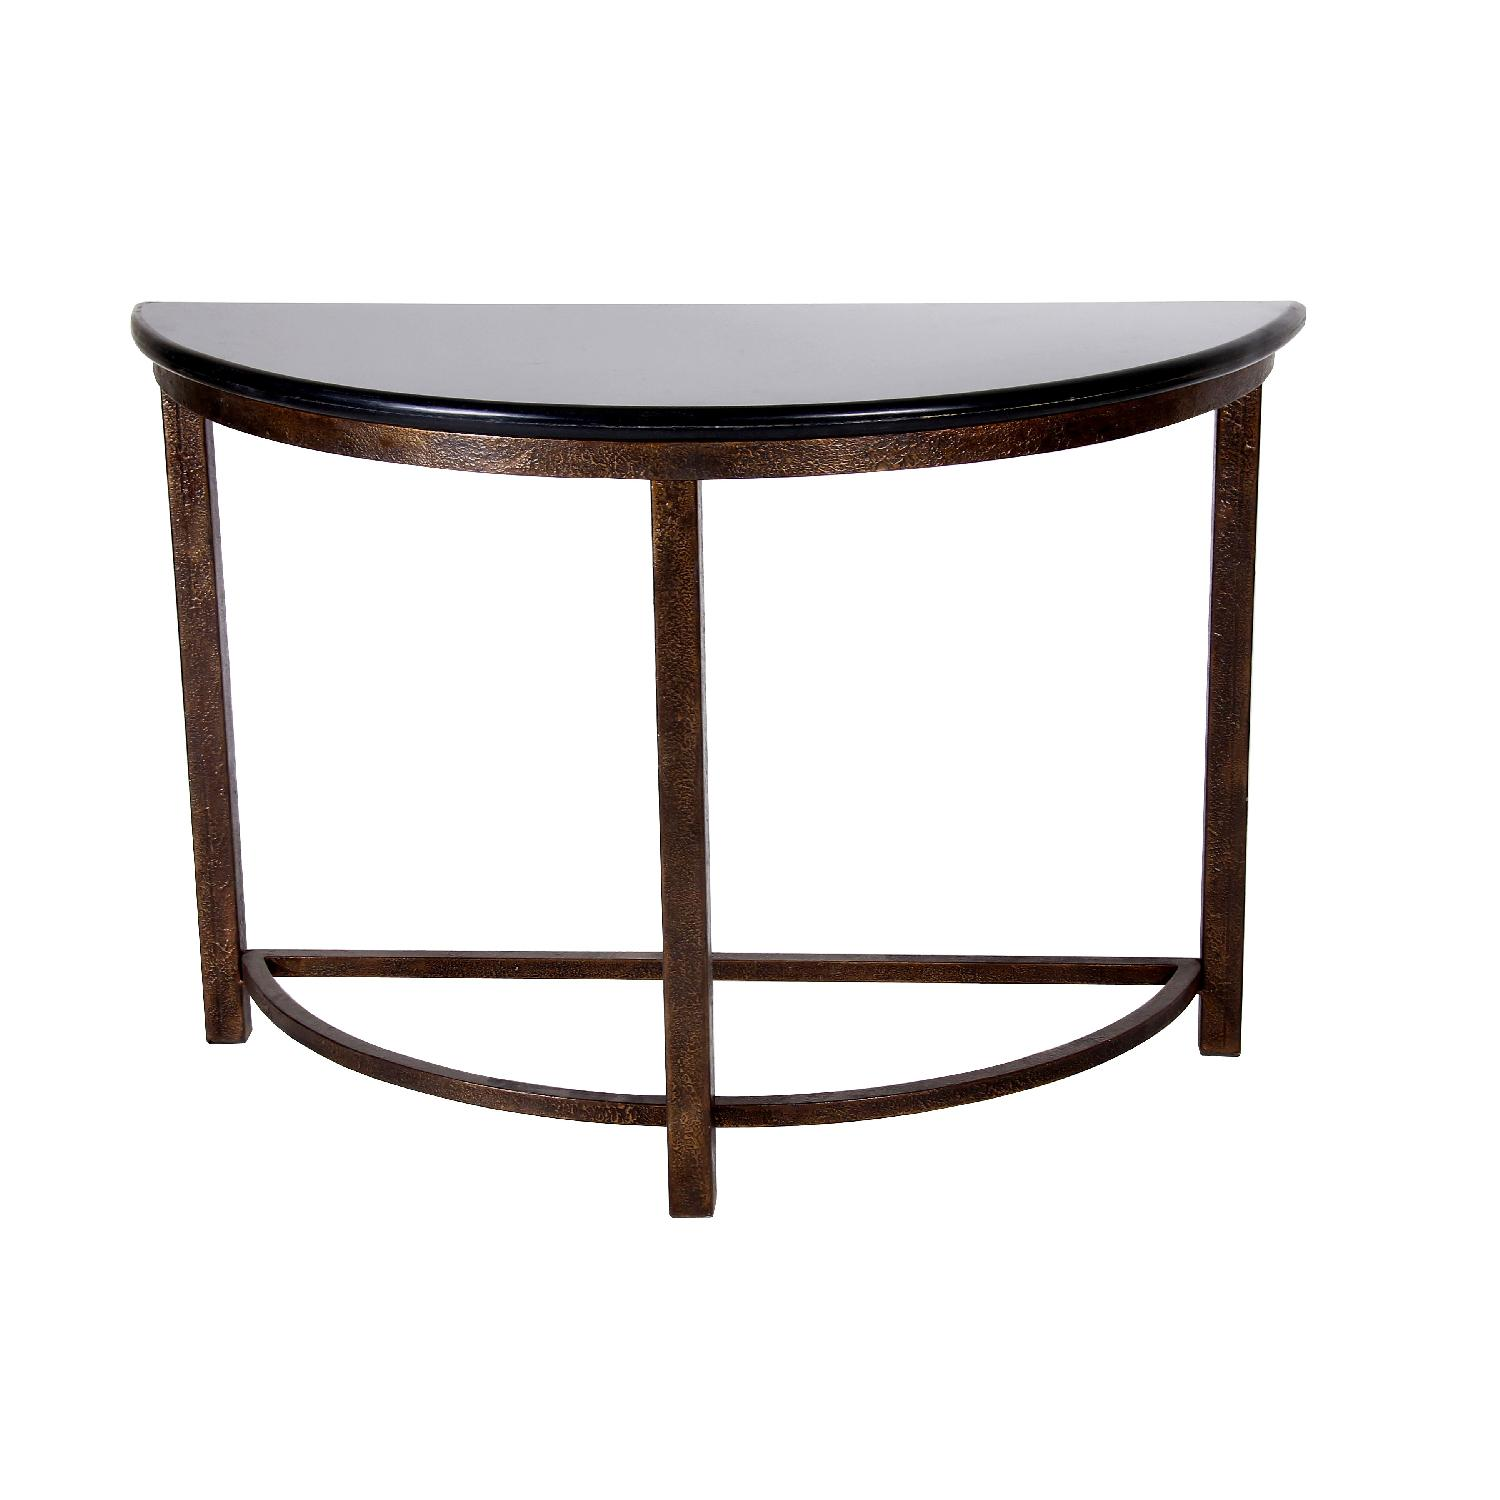 Designe gallerie metal console table with black marble